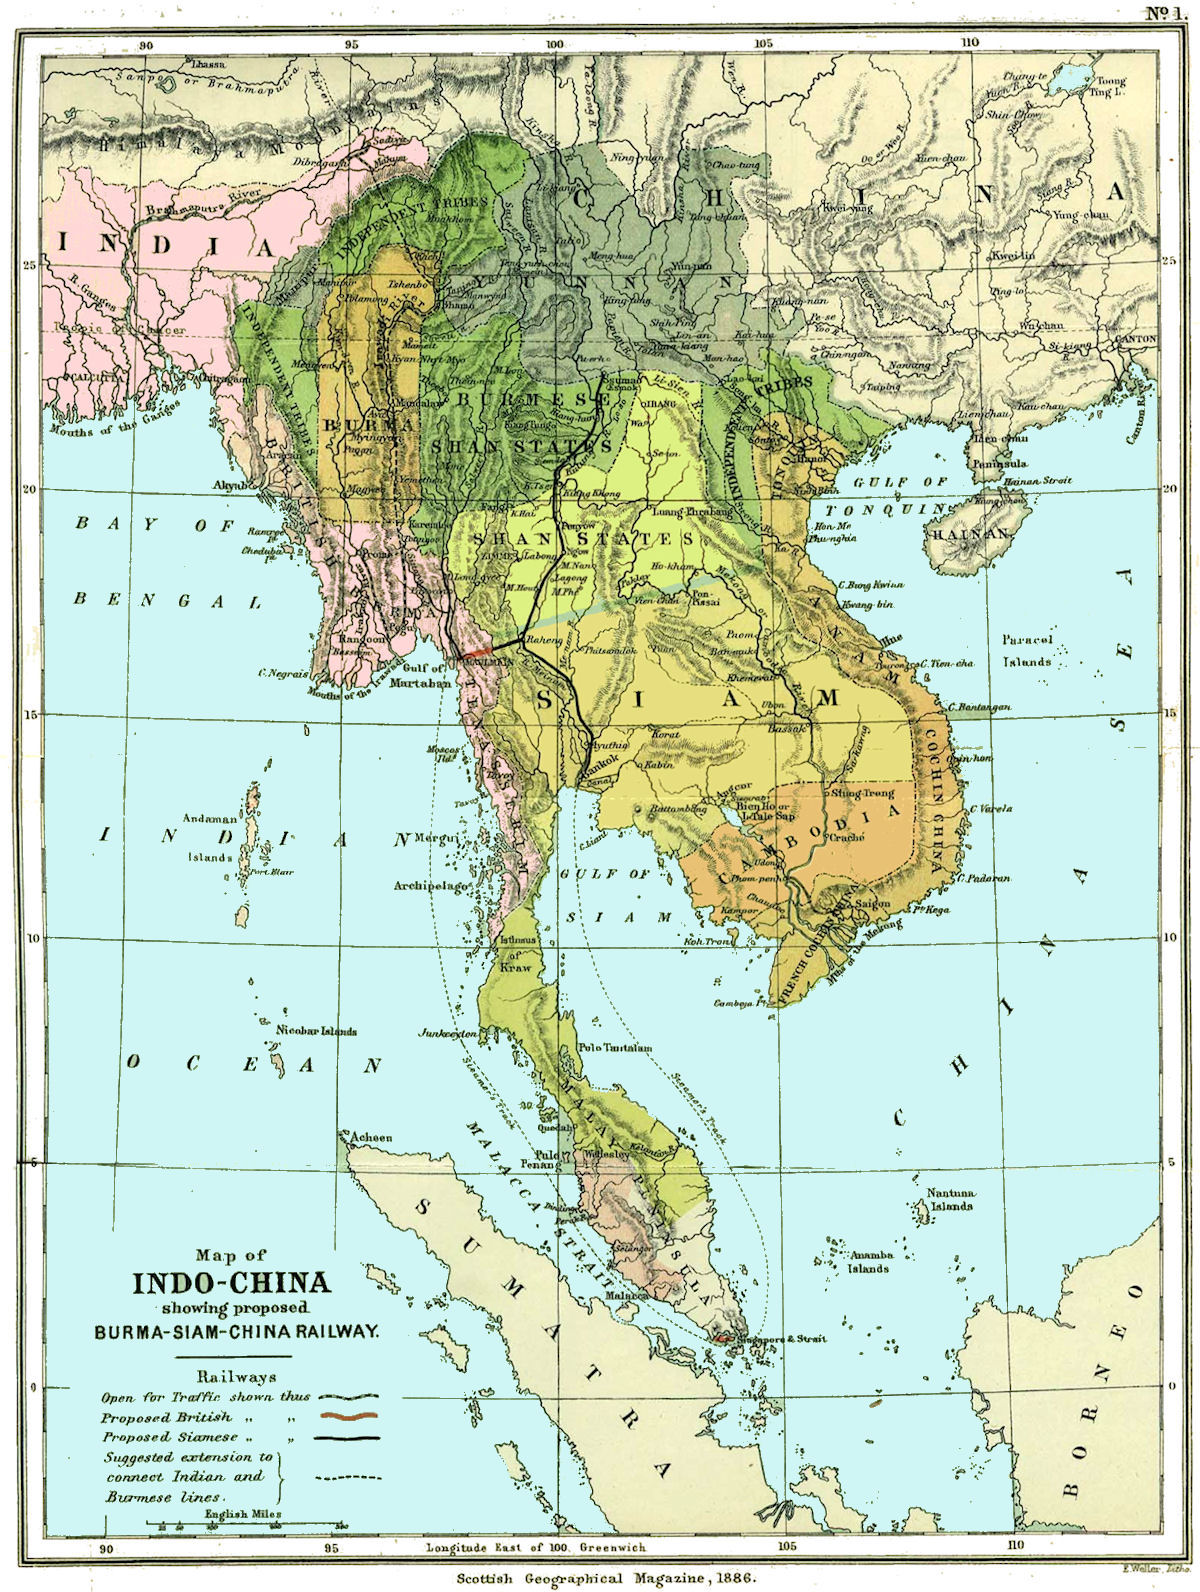 a history of indochina Dialects of south indian languages as well as sanskrit were introduced into the archipelago and into indochina early islam in indonesia throughout history.